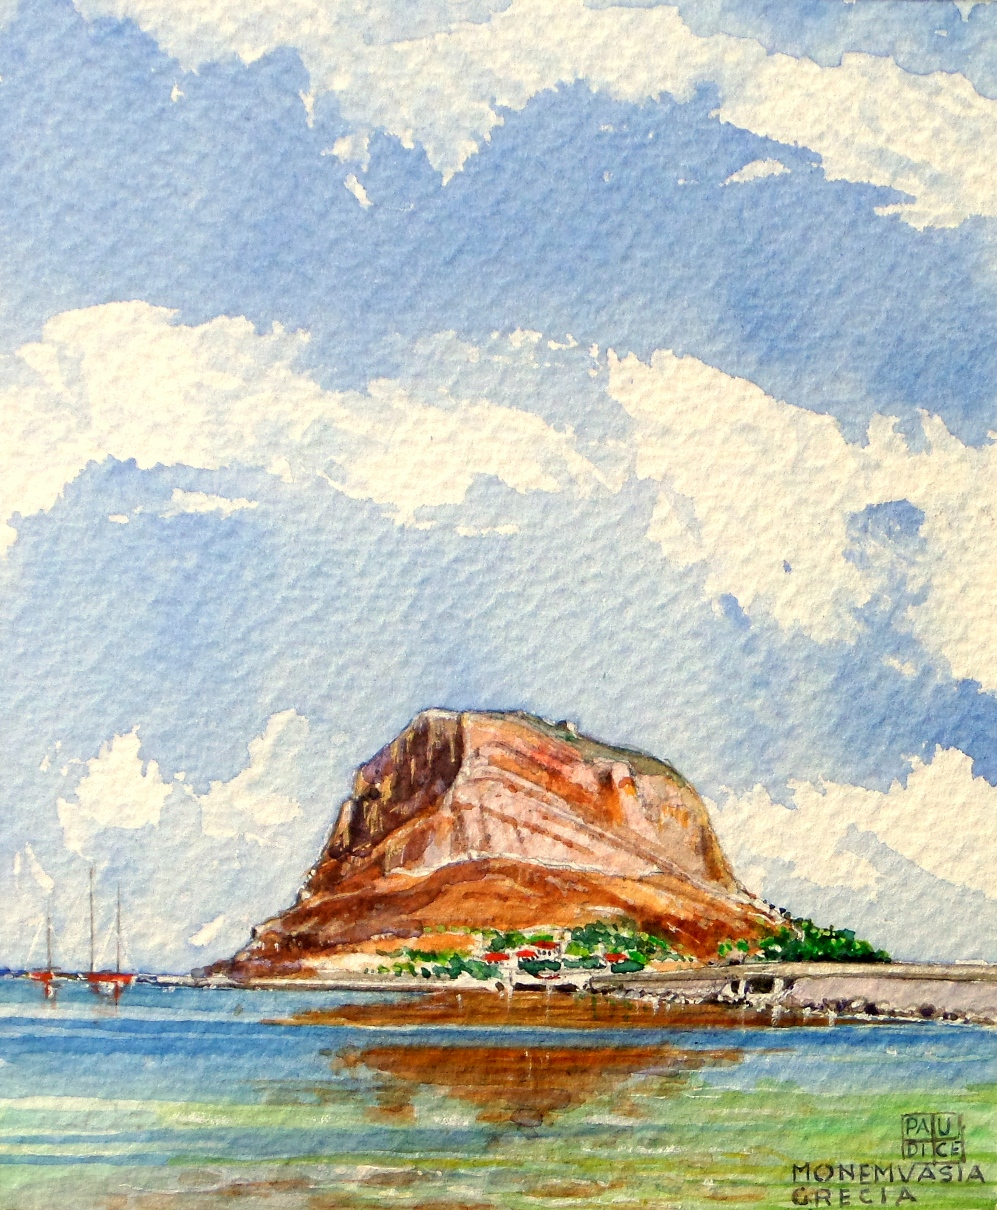 Vincenzo Paudice - Monemvasia, Isolotto di Monemvasia